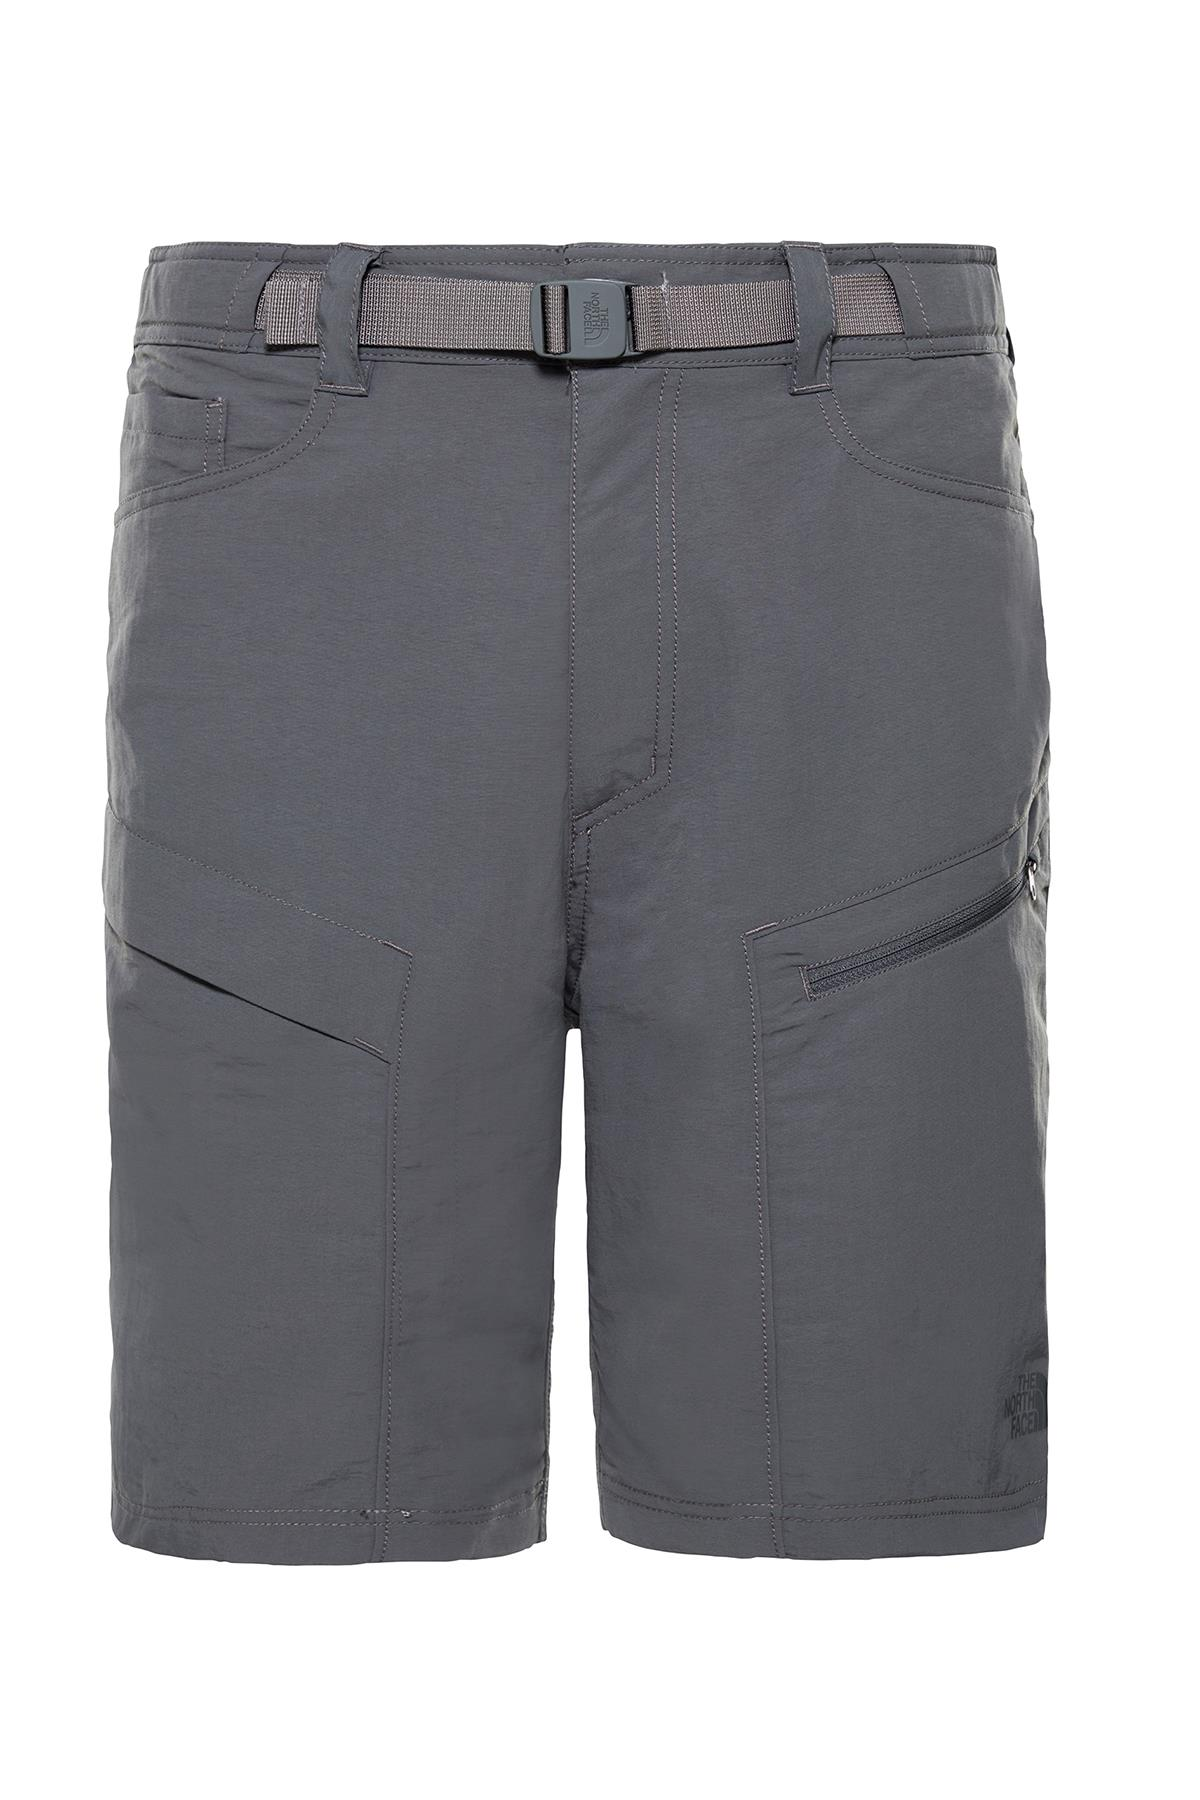 The Northface Erkek Paramount Trail Short T92Wl9254 Şort